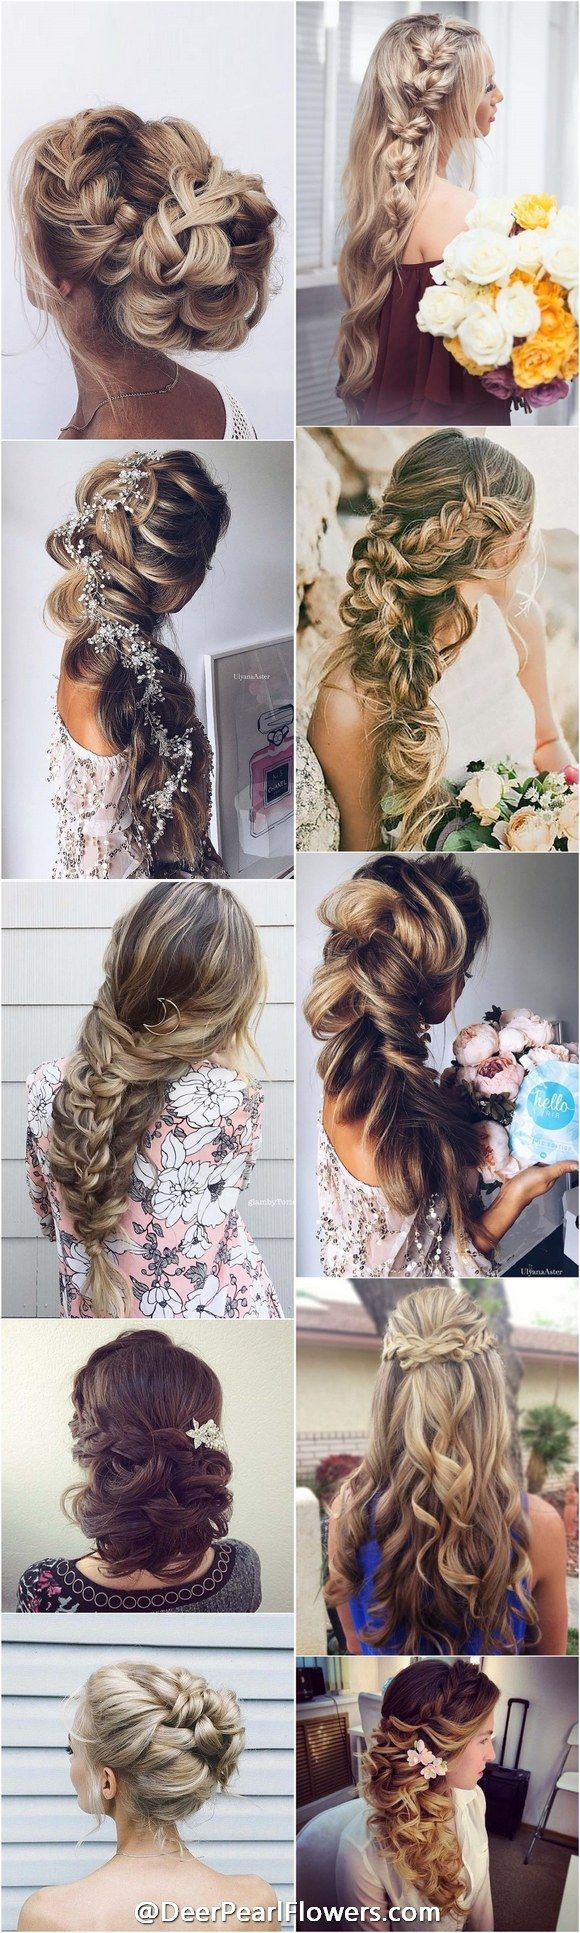 35 Wedding Updo Hairstyles For Long Hair From Ulyana Aster: Best 25+ Fairy Hairstyles Ideas On Pinterest